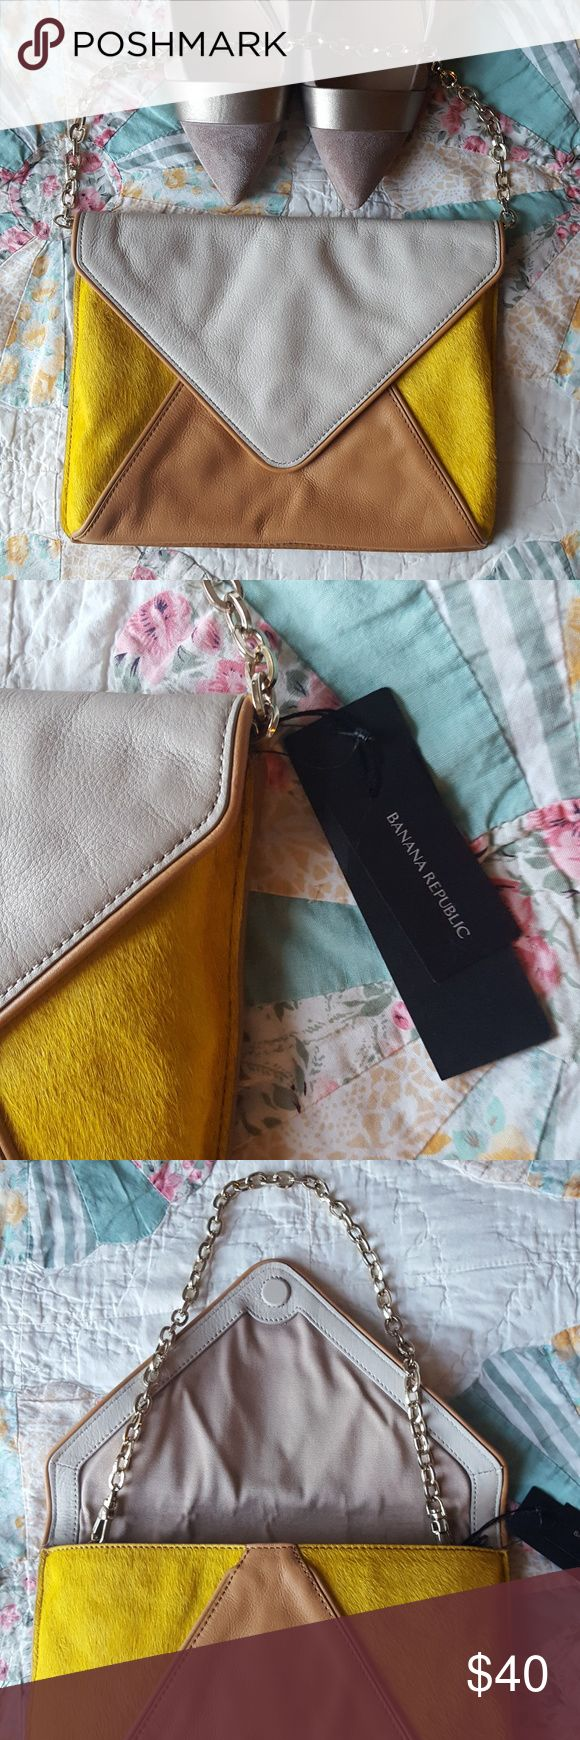 BR Leather Colorback Envelope bag w/Calfskin NWT Another clutch that sat in my closet, NWT. The back is the same color as the tan section. The yellow is real calfskin. Perfect size for going to work, going out, or a concert! Banana Republic Bags Clutches & Wristlets